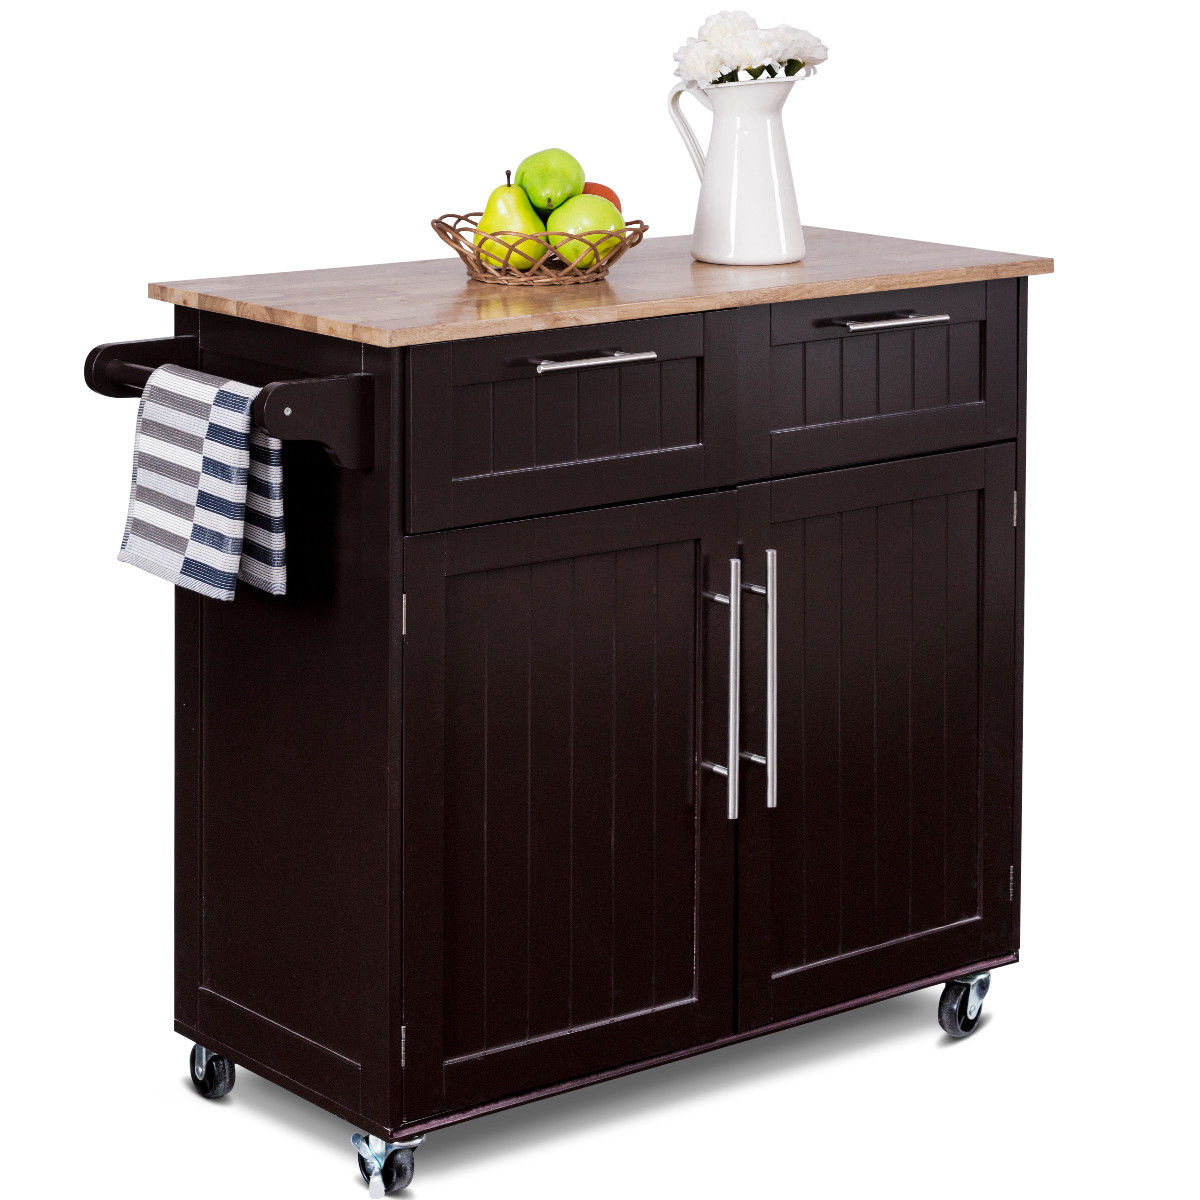 Product Image Costway Rolling Kitchen Cart Island Heavy Duty Storage Trolley  Cabinet Utility Modern